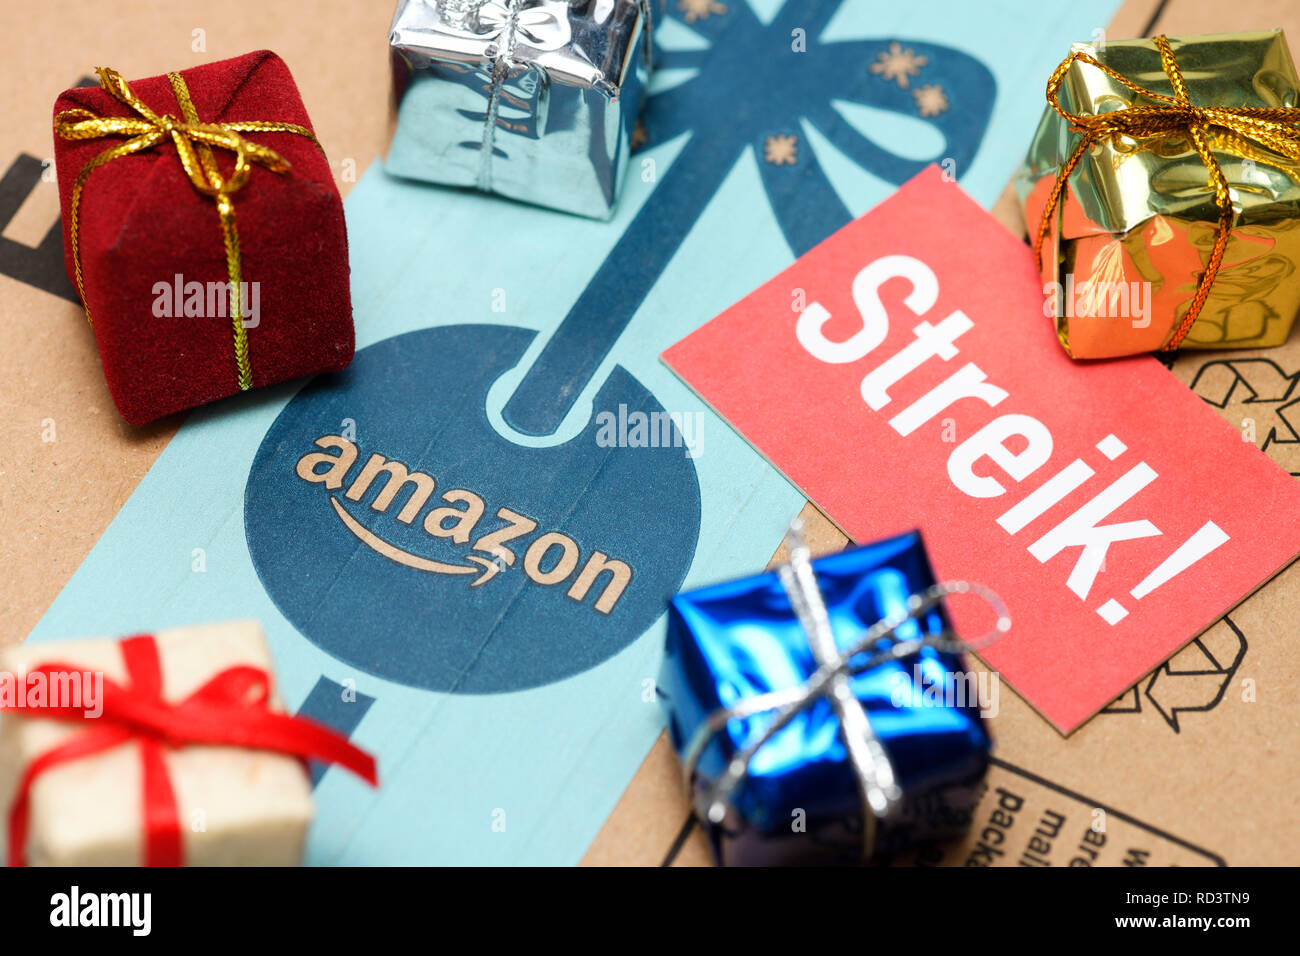 Strike sign and presents on Amazon package, Streik-Schild und Geschenke auf Amazon-Paket Stock Photo